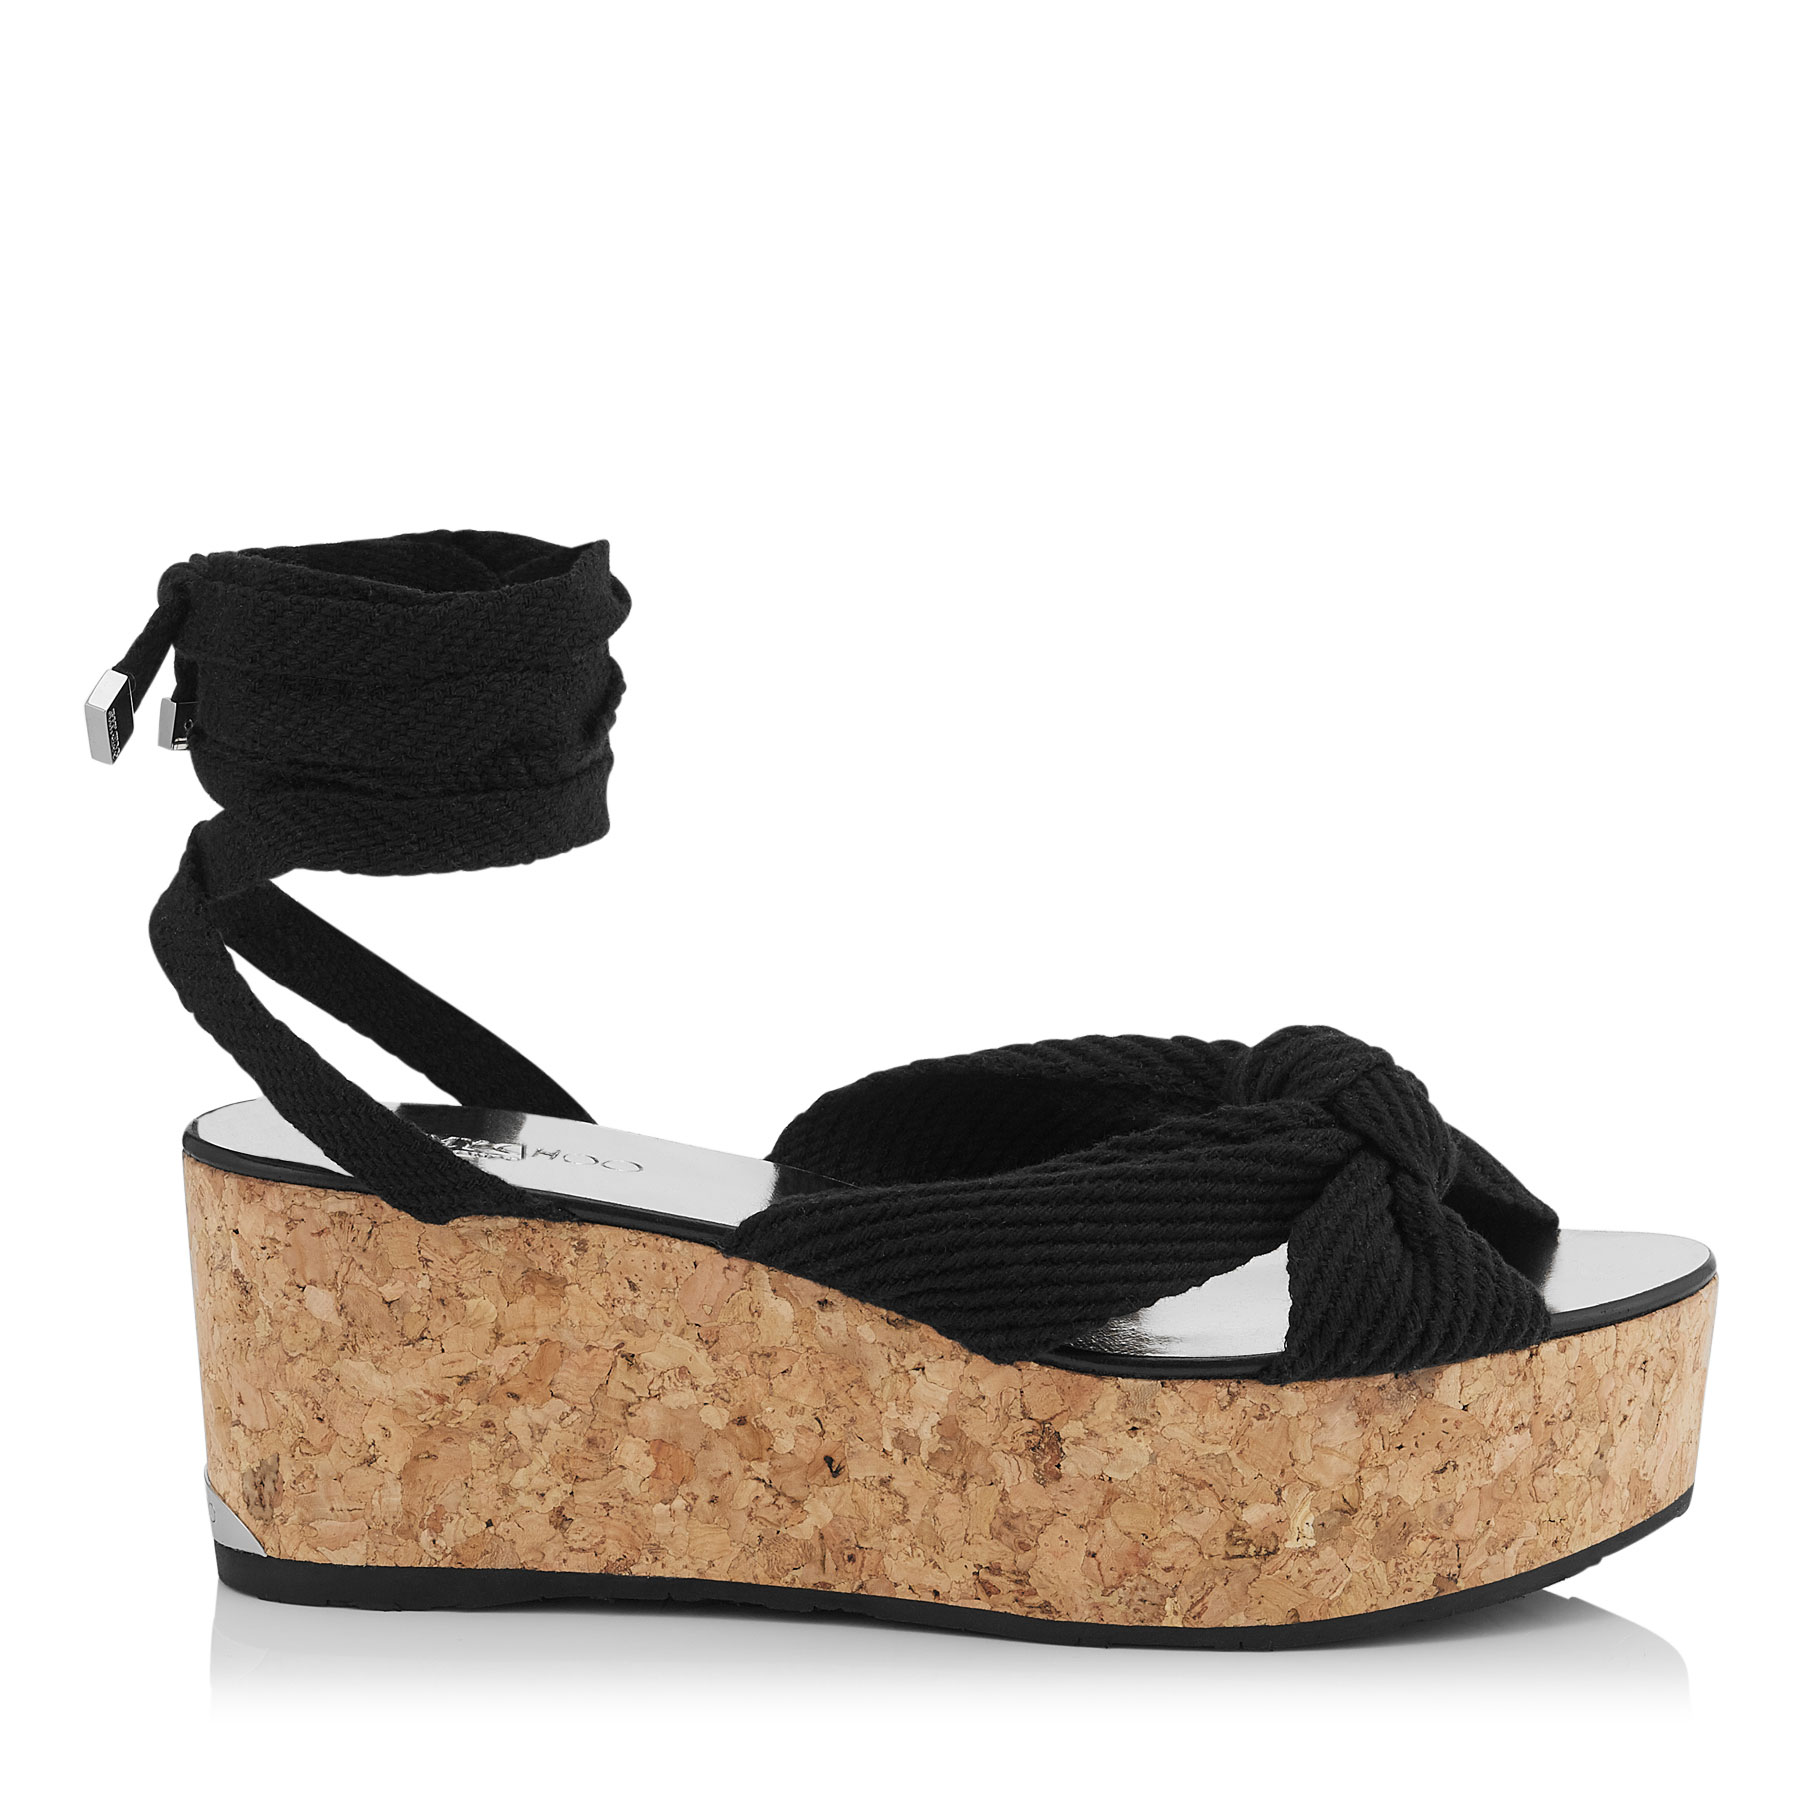 NORAH 70 Black Cotton Wedge Sandals by Jimmy Choo